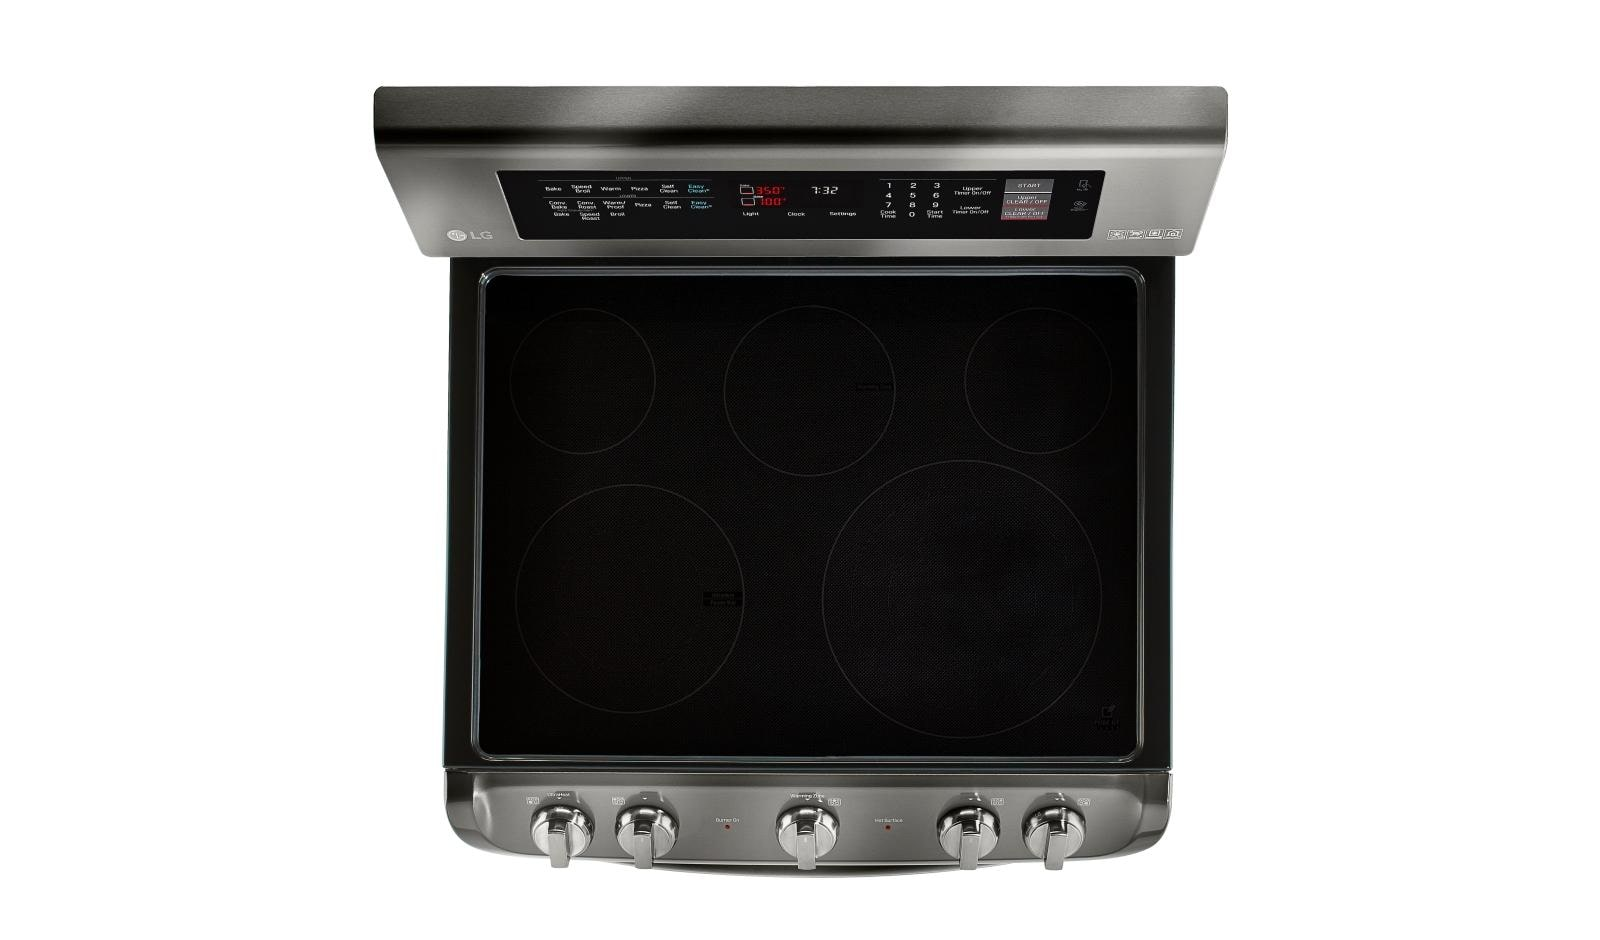 Lg Lde4415bd Electric Double Oven Convection Range Usa Want To Install A New 40 Amp Have 50 Circuit